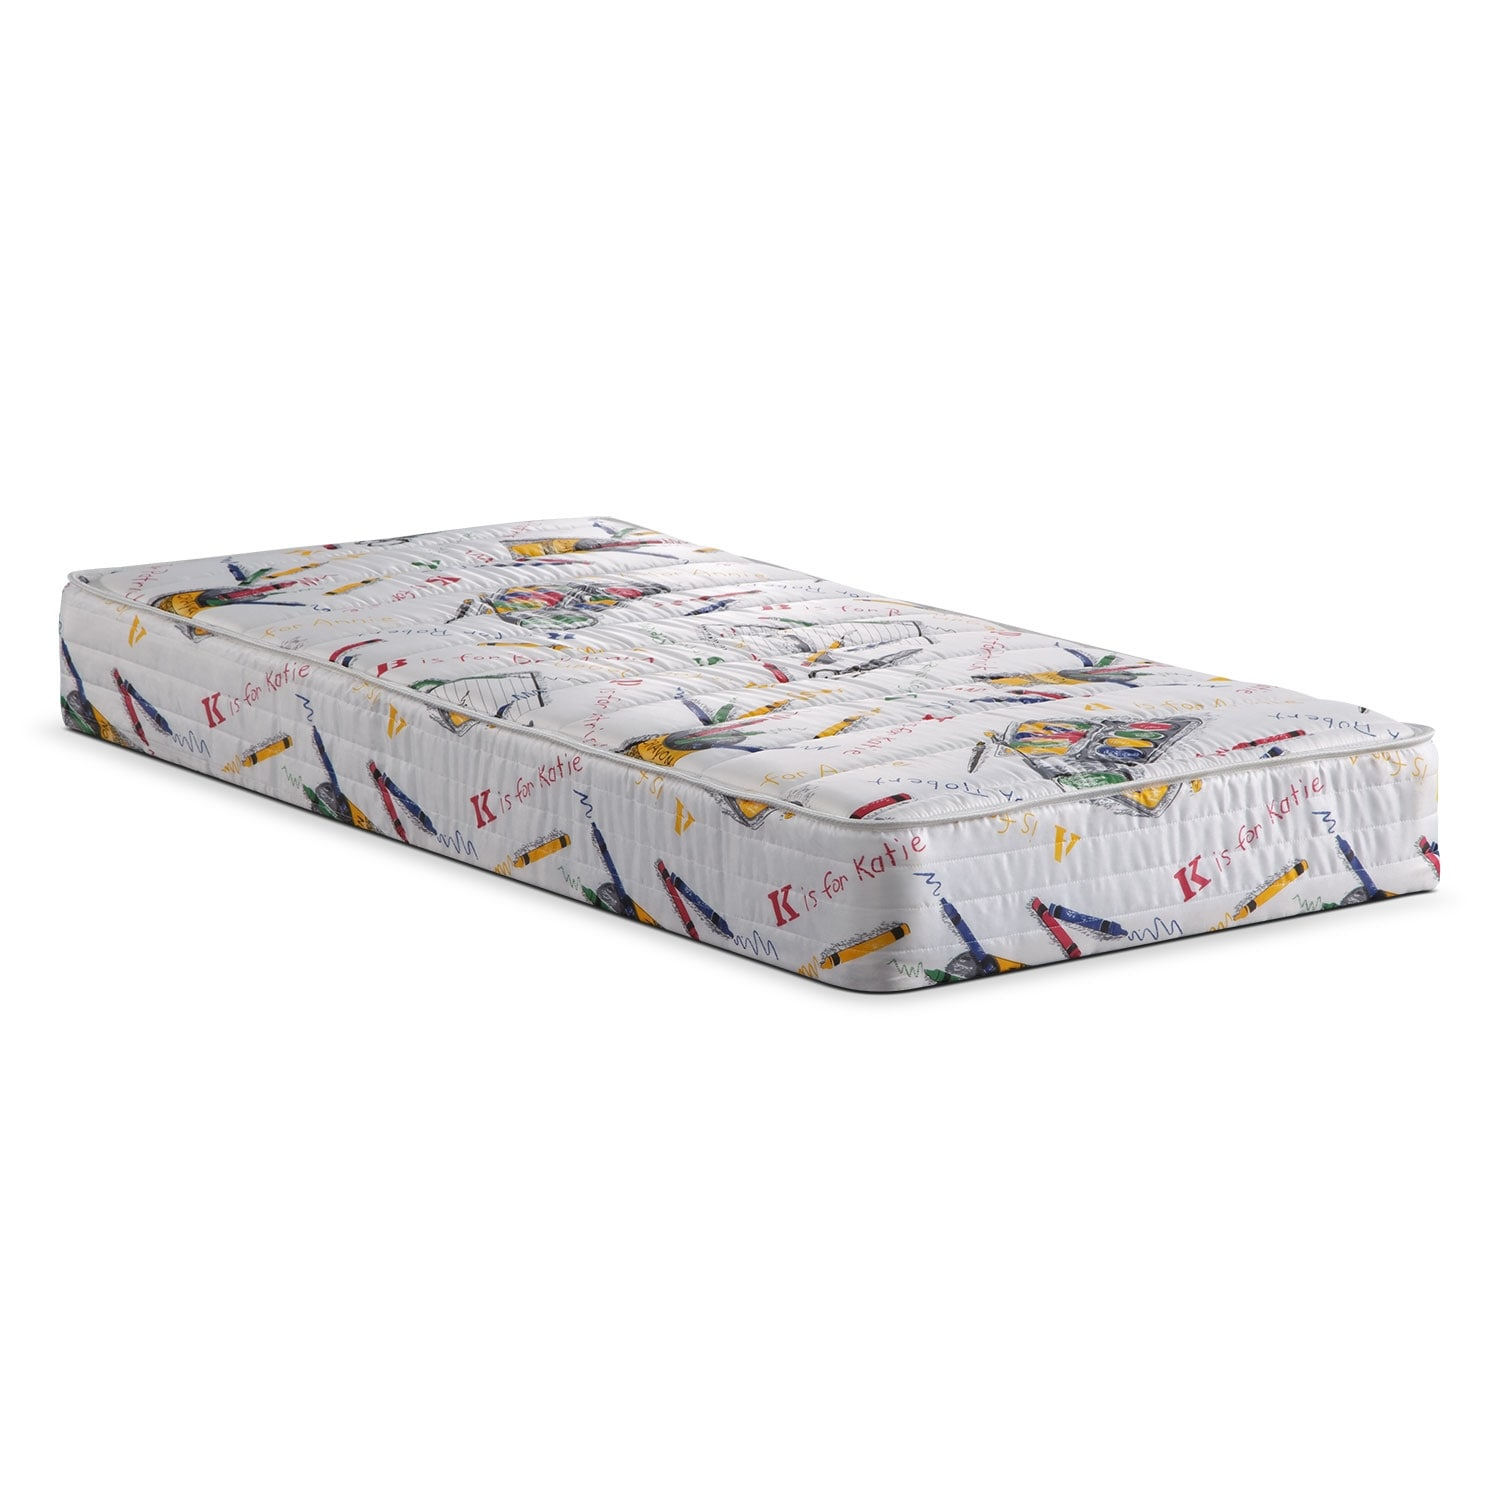 Mattresses and Bedding - Innerspring Bunkie Full Mattress/Bunkie Board